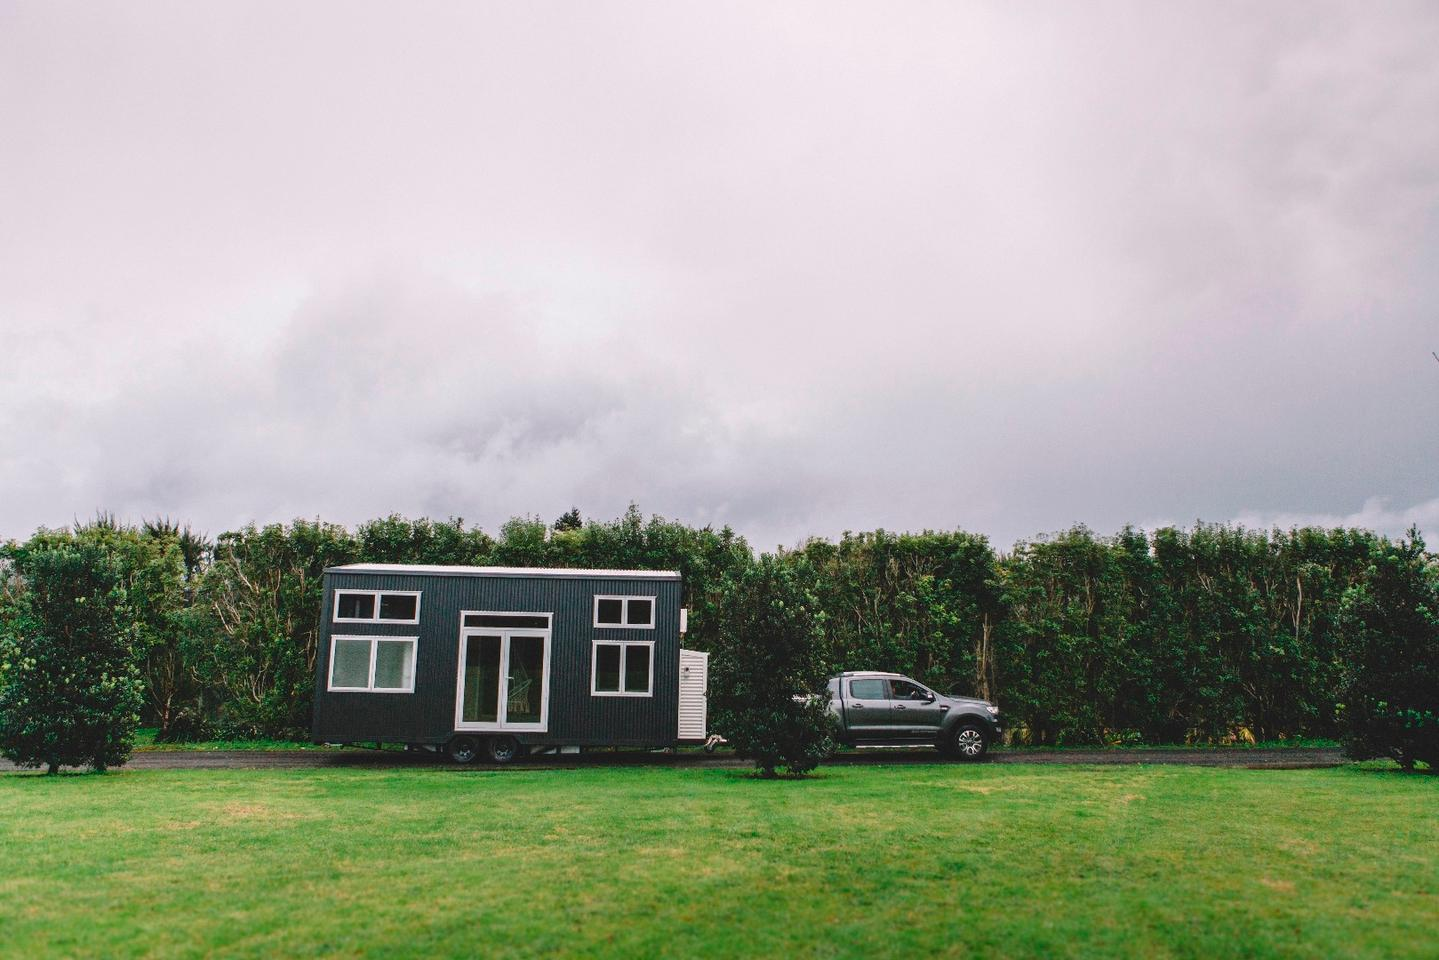 The Millennial Tiny House shown is Build Tiny's prototype model